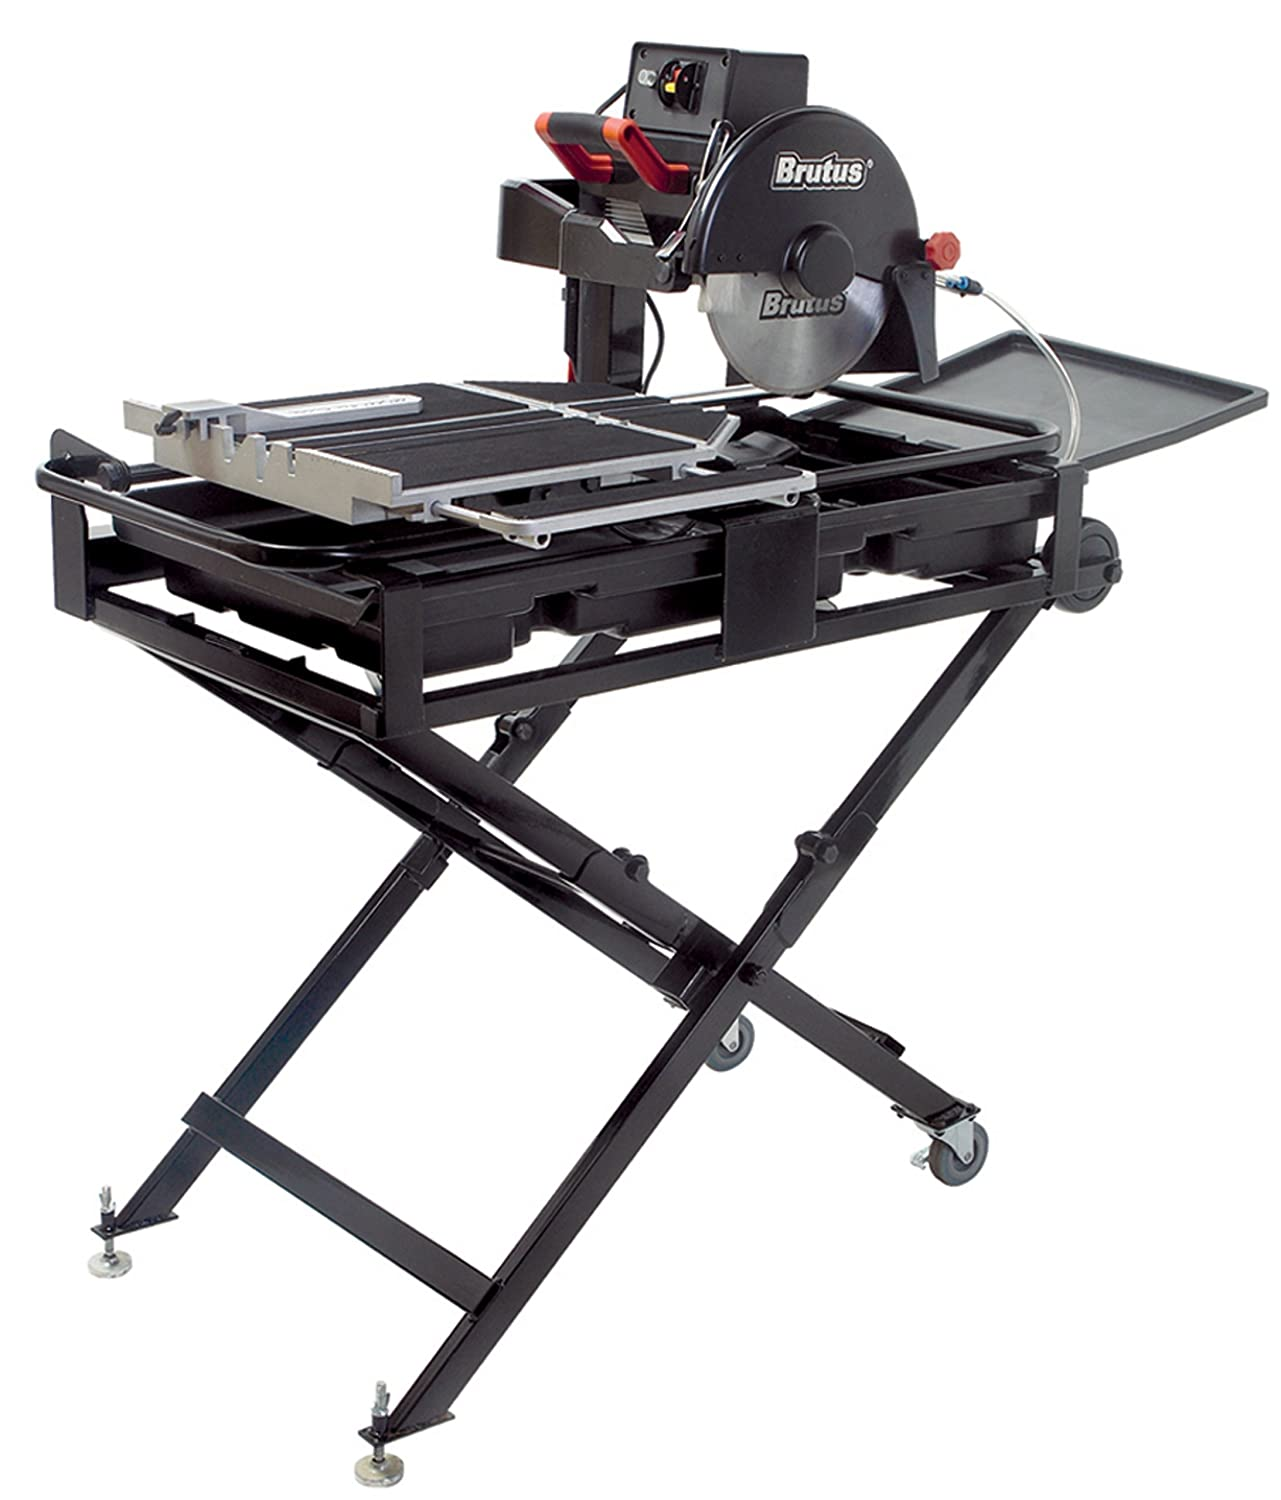 81RqiPSXehL._SL1500_ qep 61024 24 inch brutus professional tile saw with water pump and Powermatic 66 Table Saw at eliteediting.co